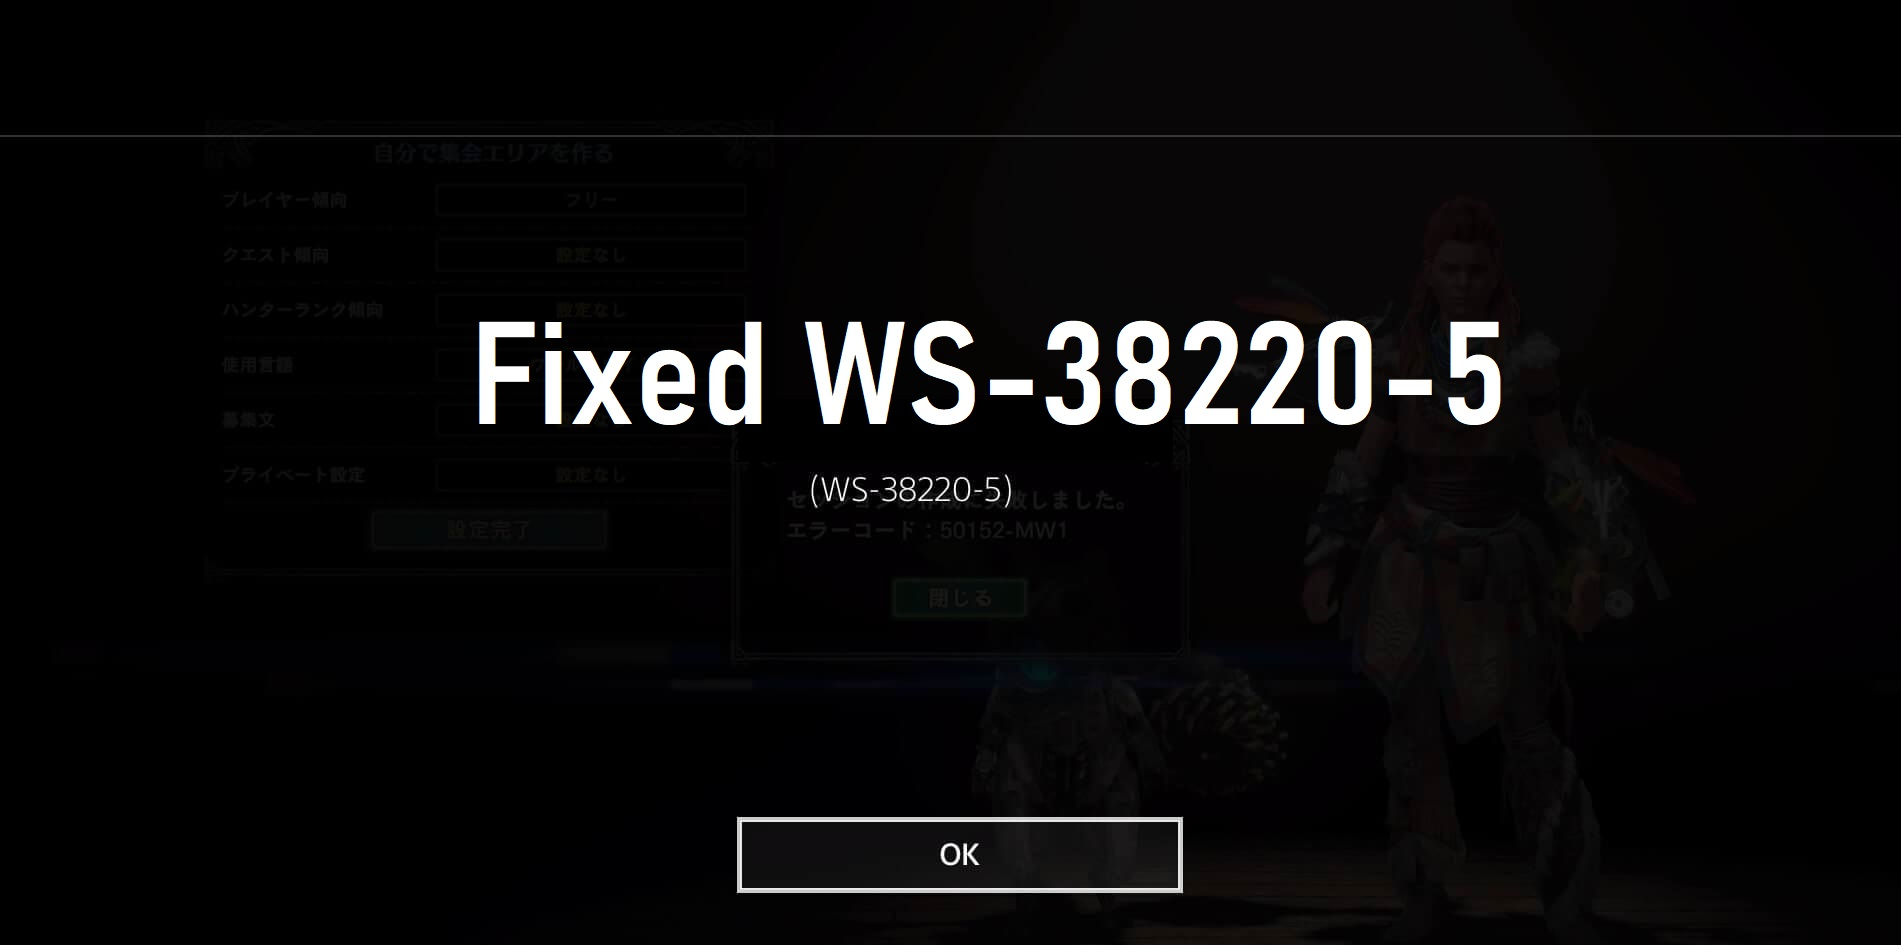 ps4 WS-38220-5 fix